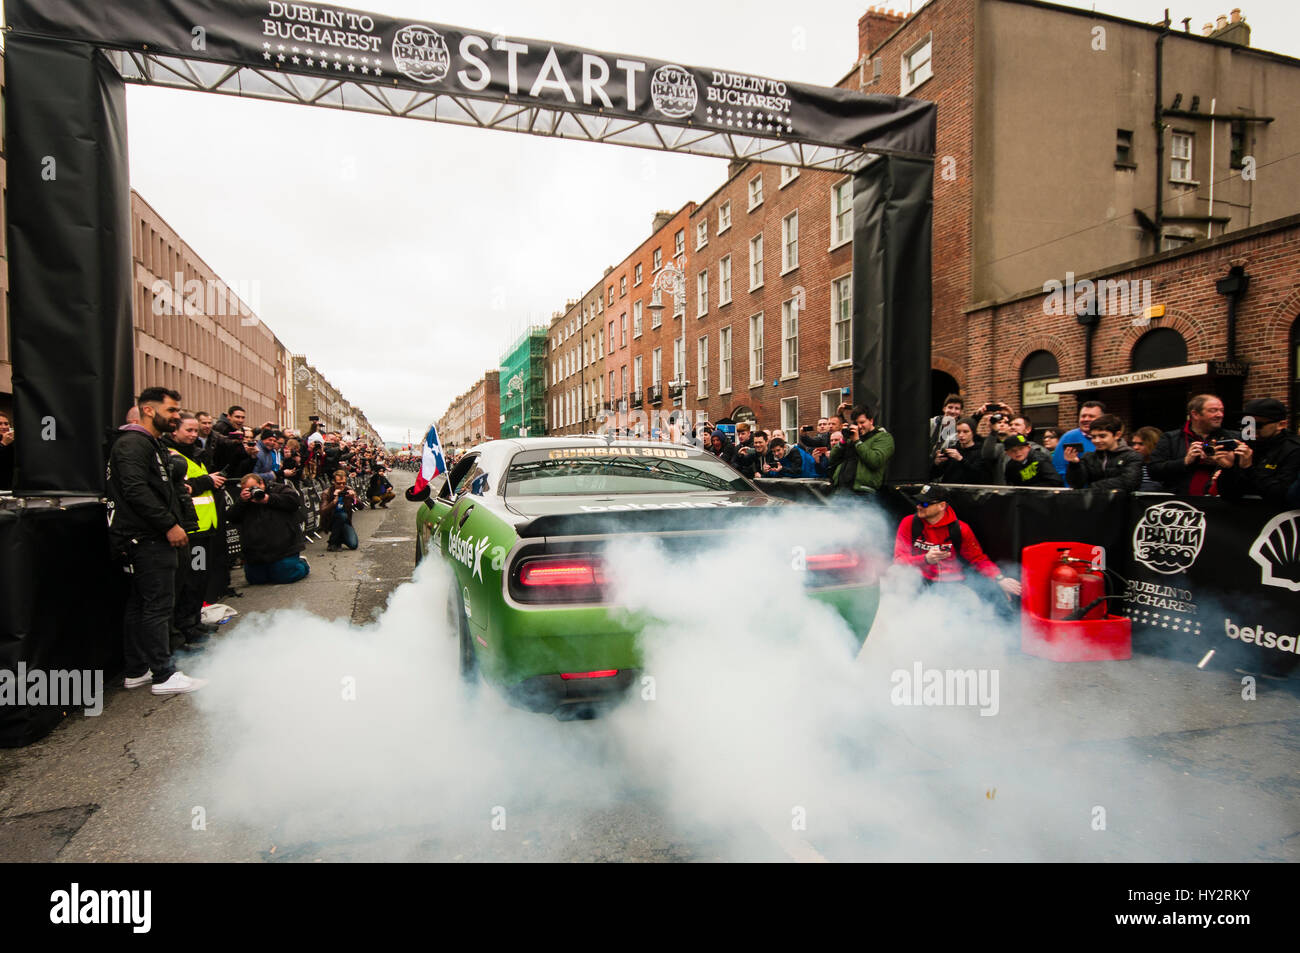 DUBLIN, IRELAND. MAY 01 2016 - A Dodge Charger generates a lot of smoke as is leaves Dublin on the first leg of - Stock Image